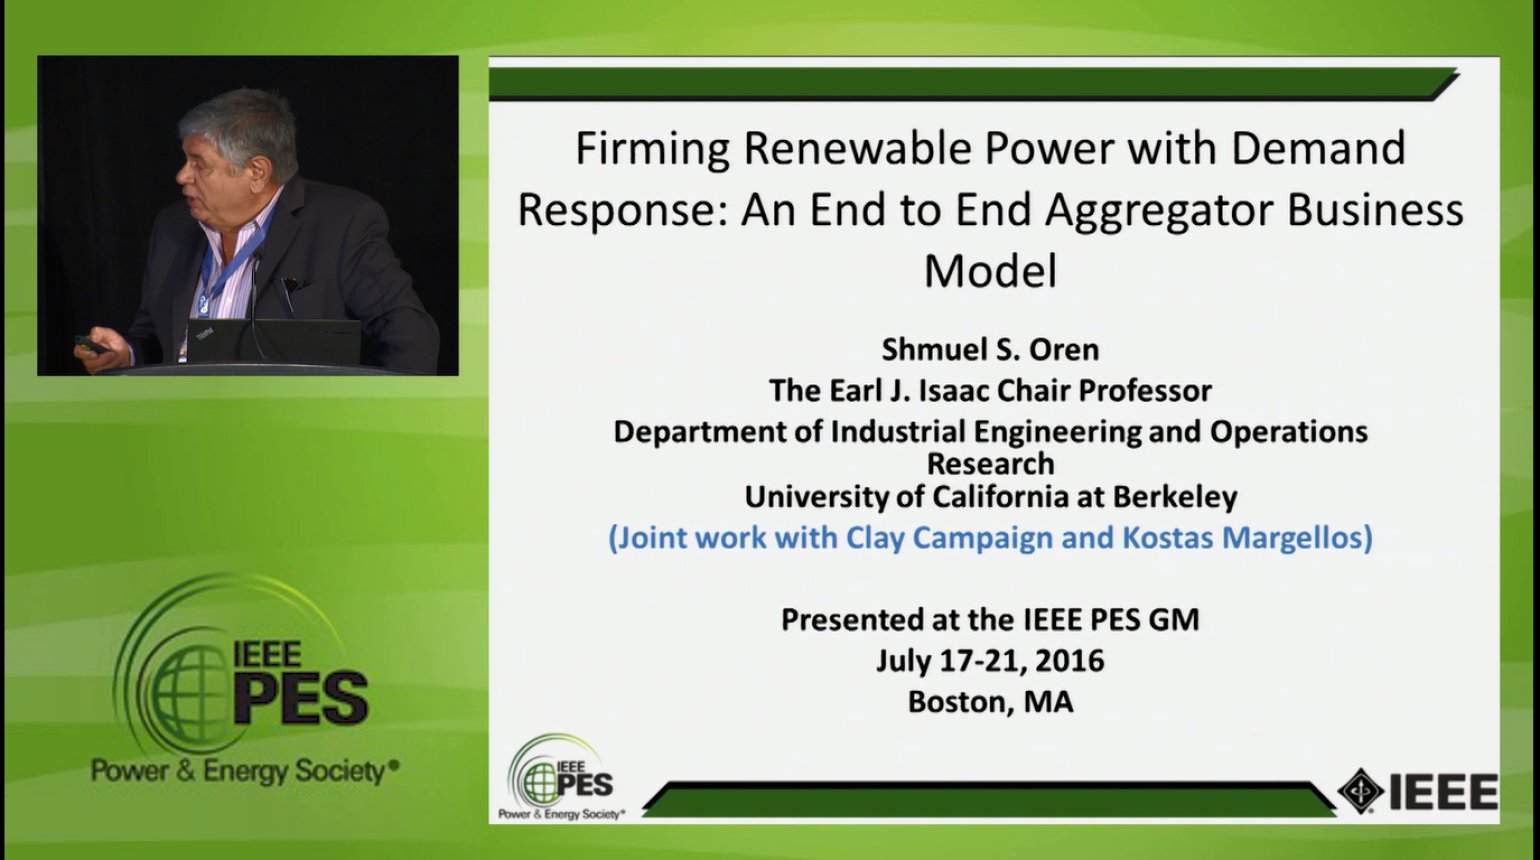 Business Models for Electricity Market - Firming Renewable Power with Demand Response: An End to End Aggregator Business Model (Video)